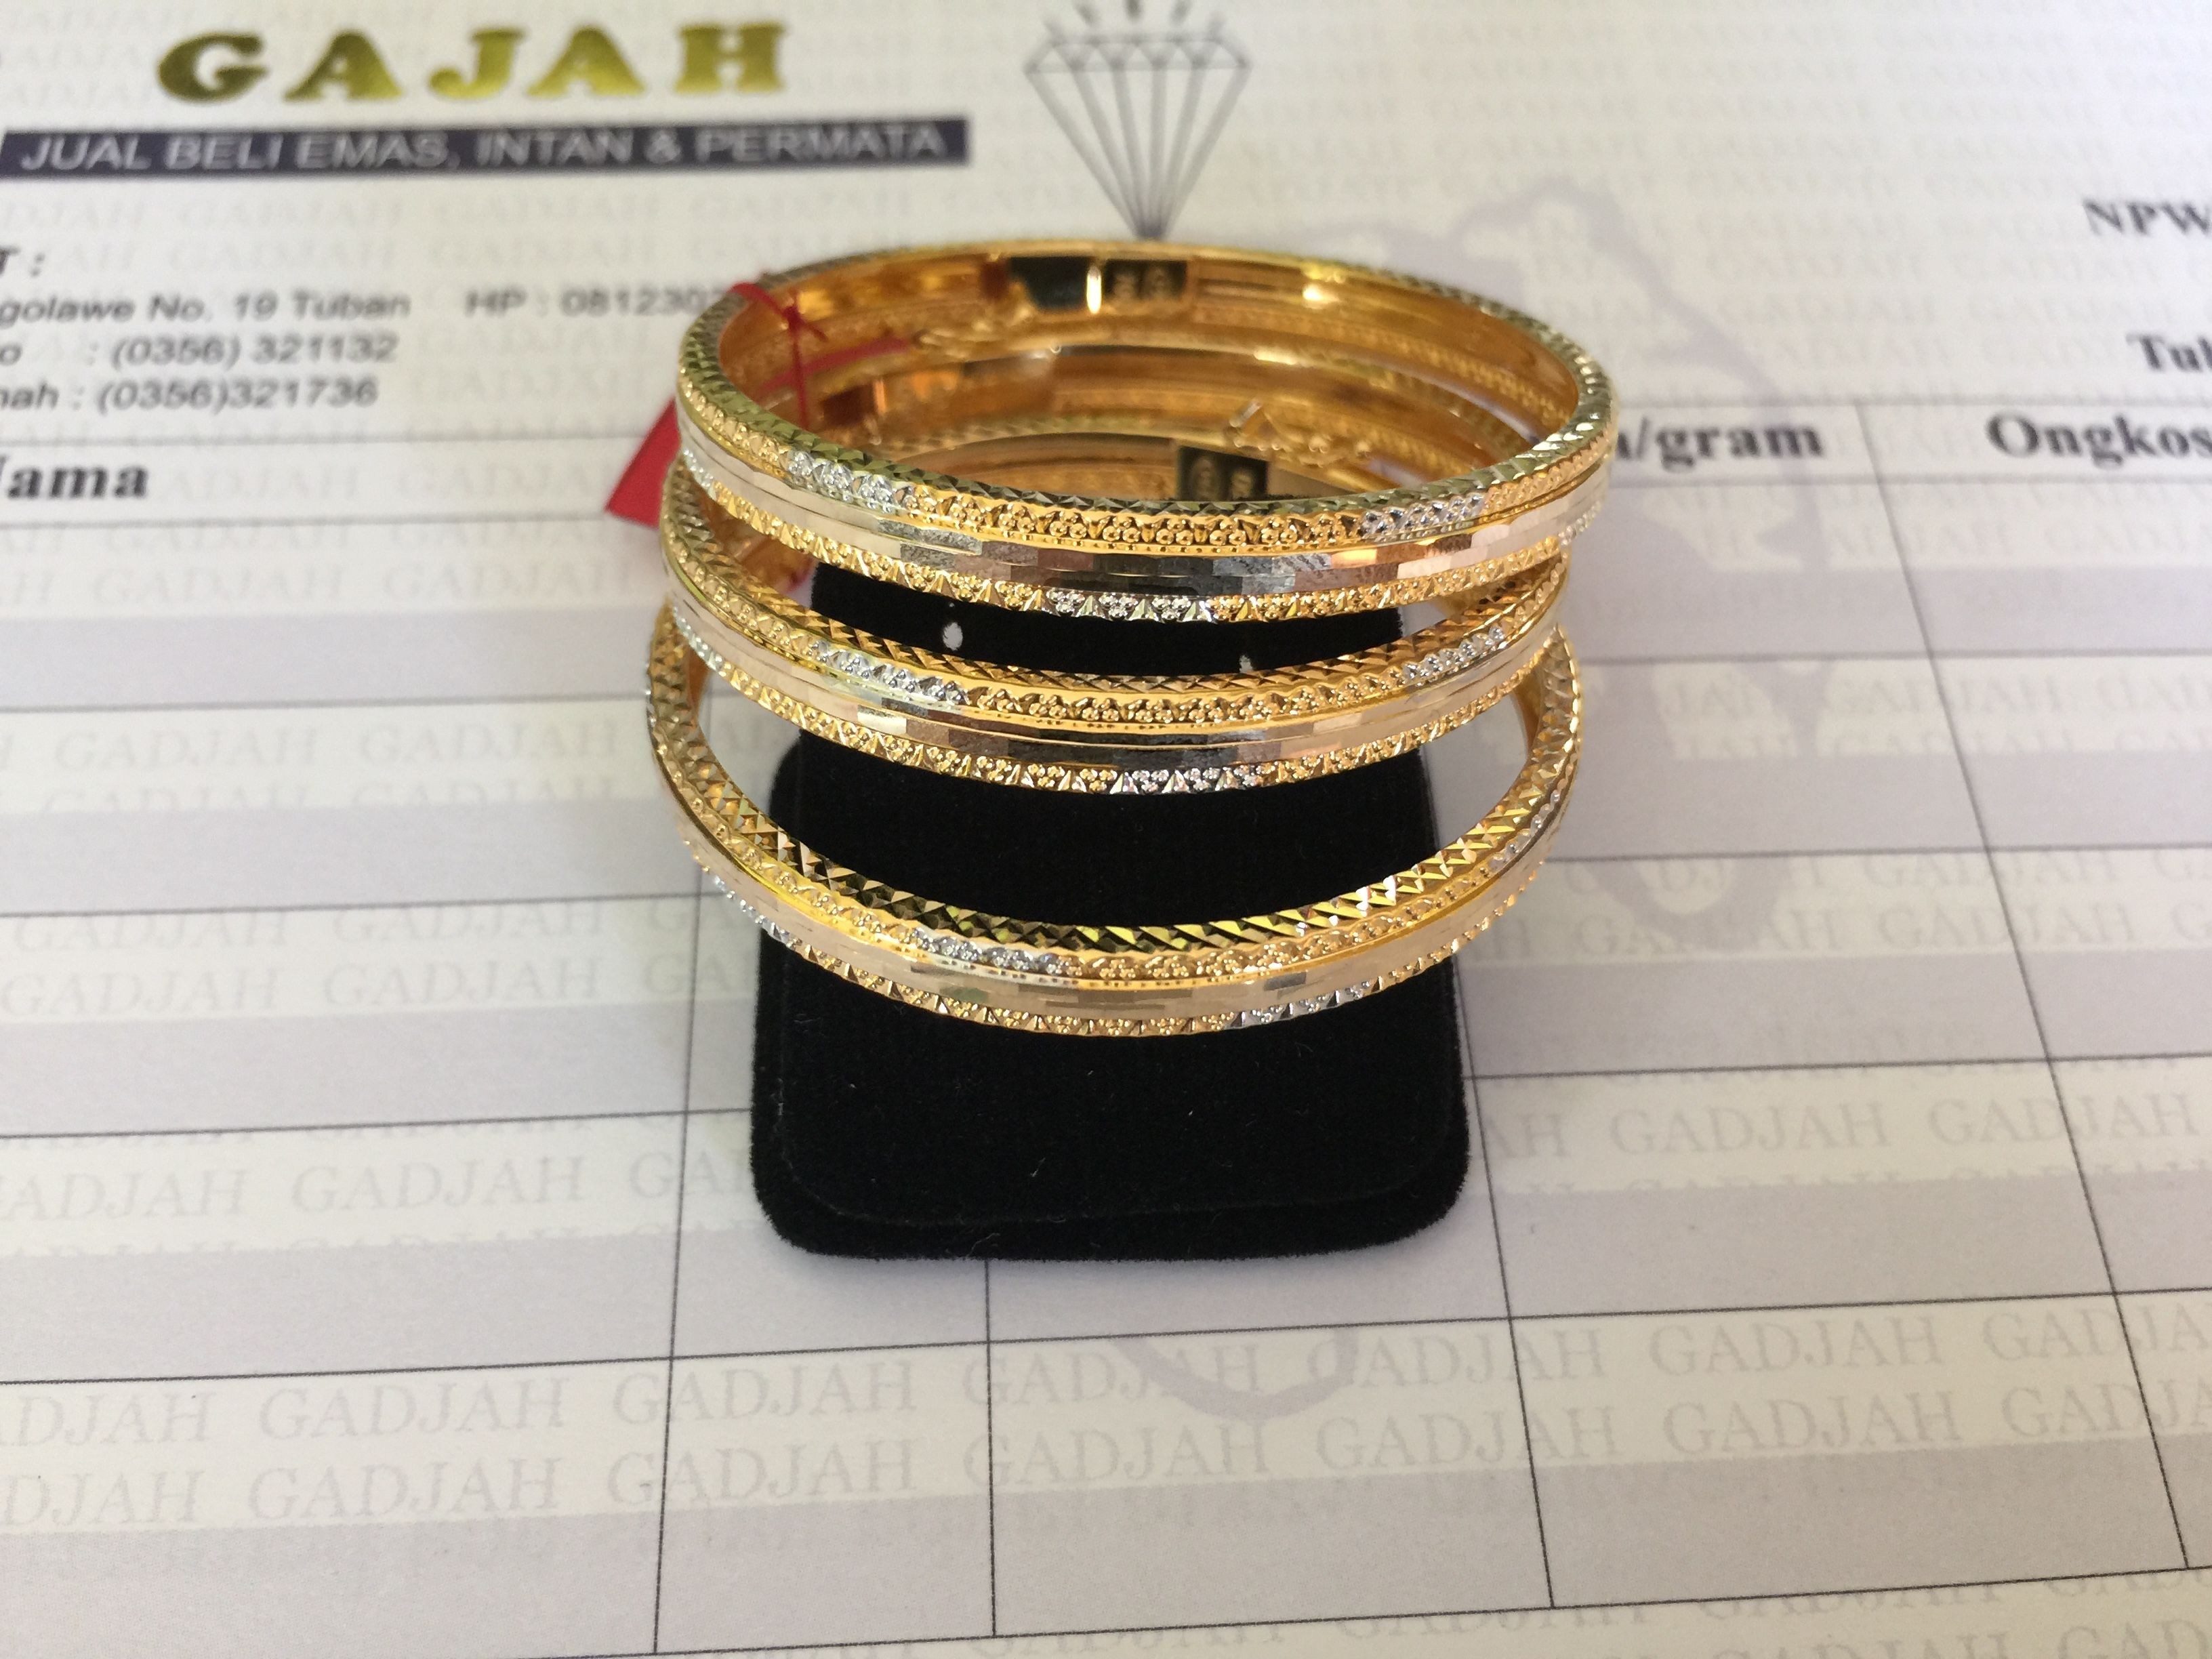 lyst roberto yellow coin bangles bracelet gold view fullscreen jewelry white cheval diamond bangle